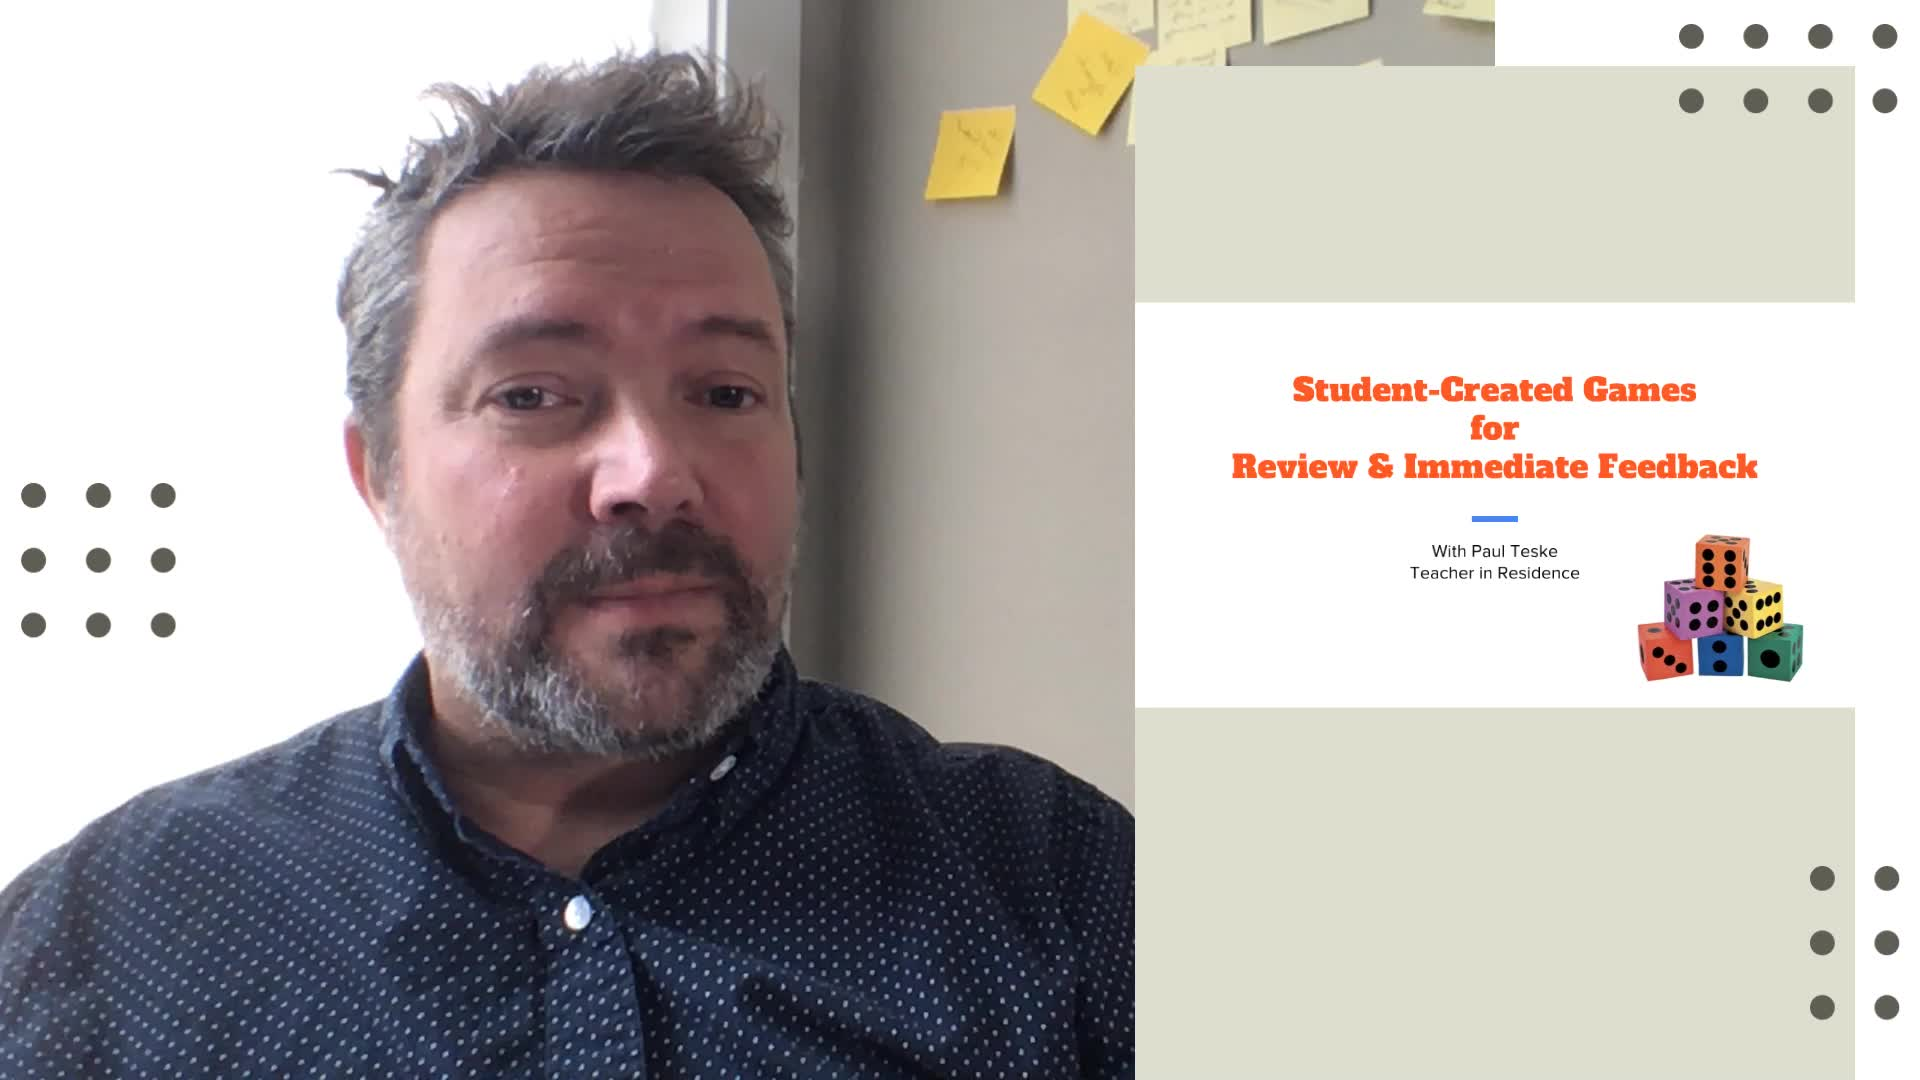 Paul Teske suggests ways for students to use Prezi's game show template to quiz each other in groups to help with conversations, assessments, and test review.